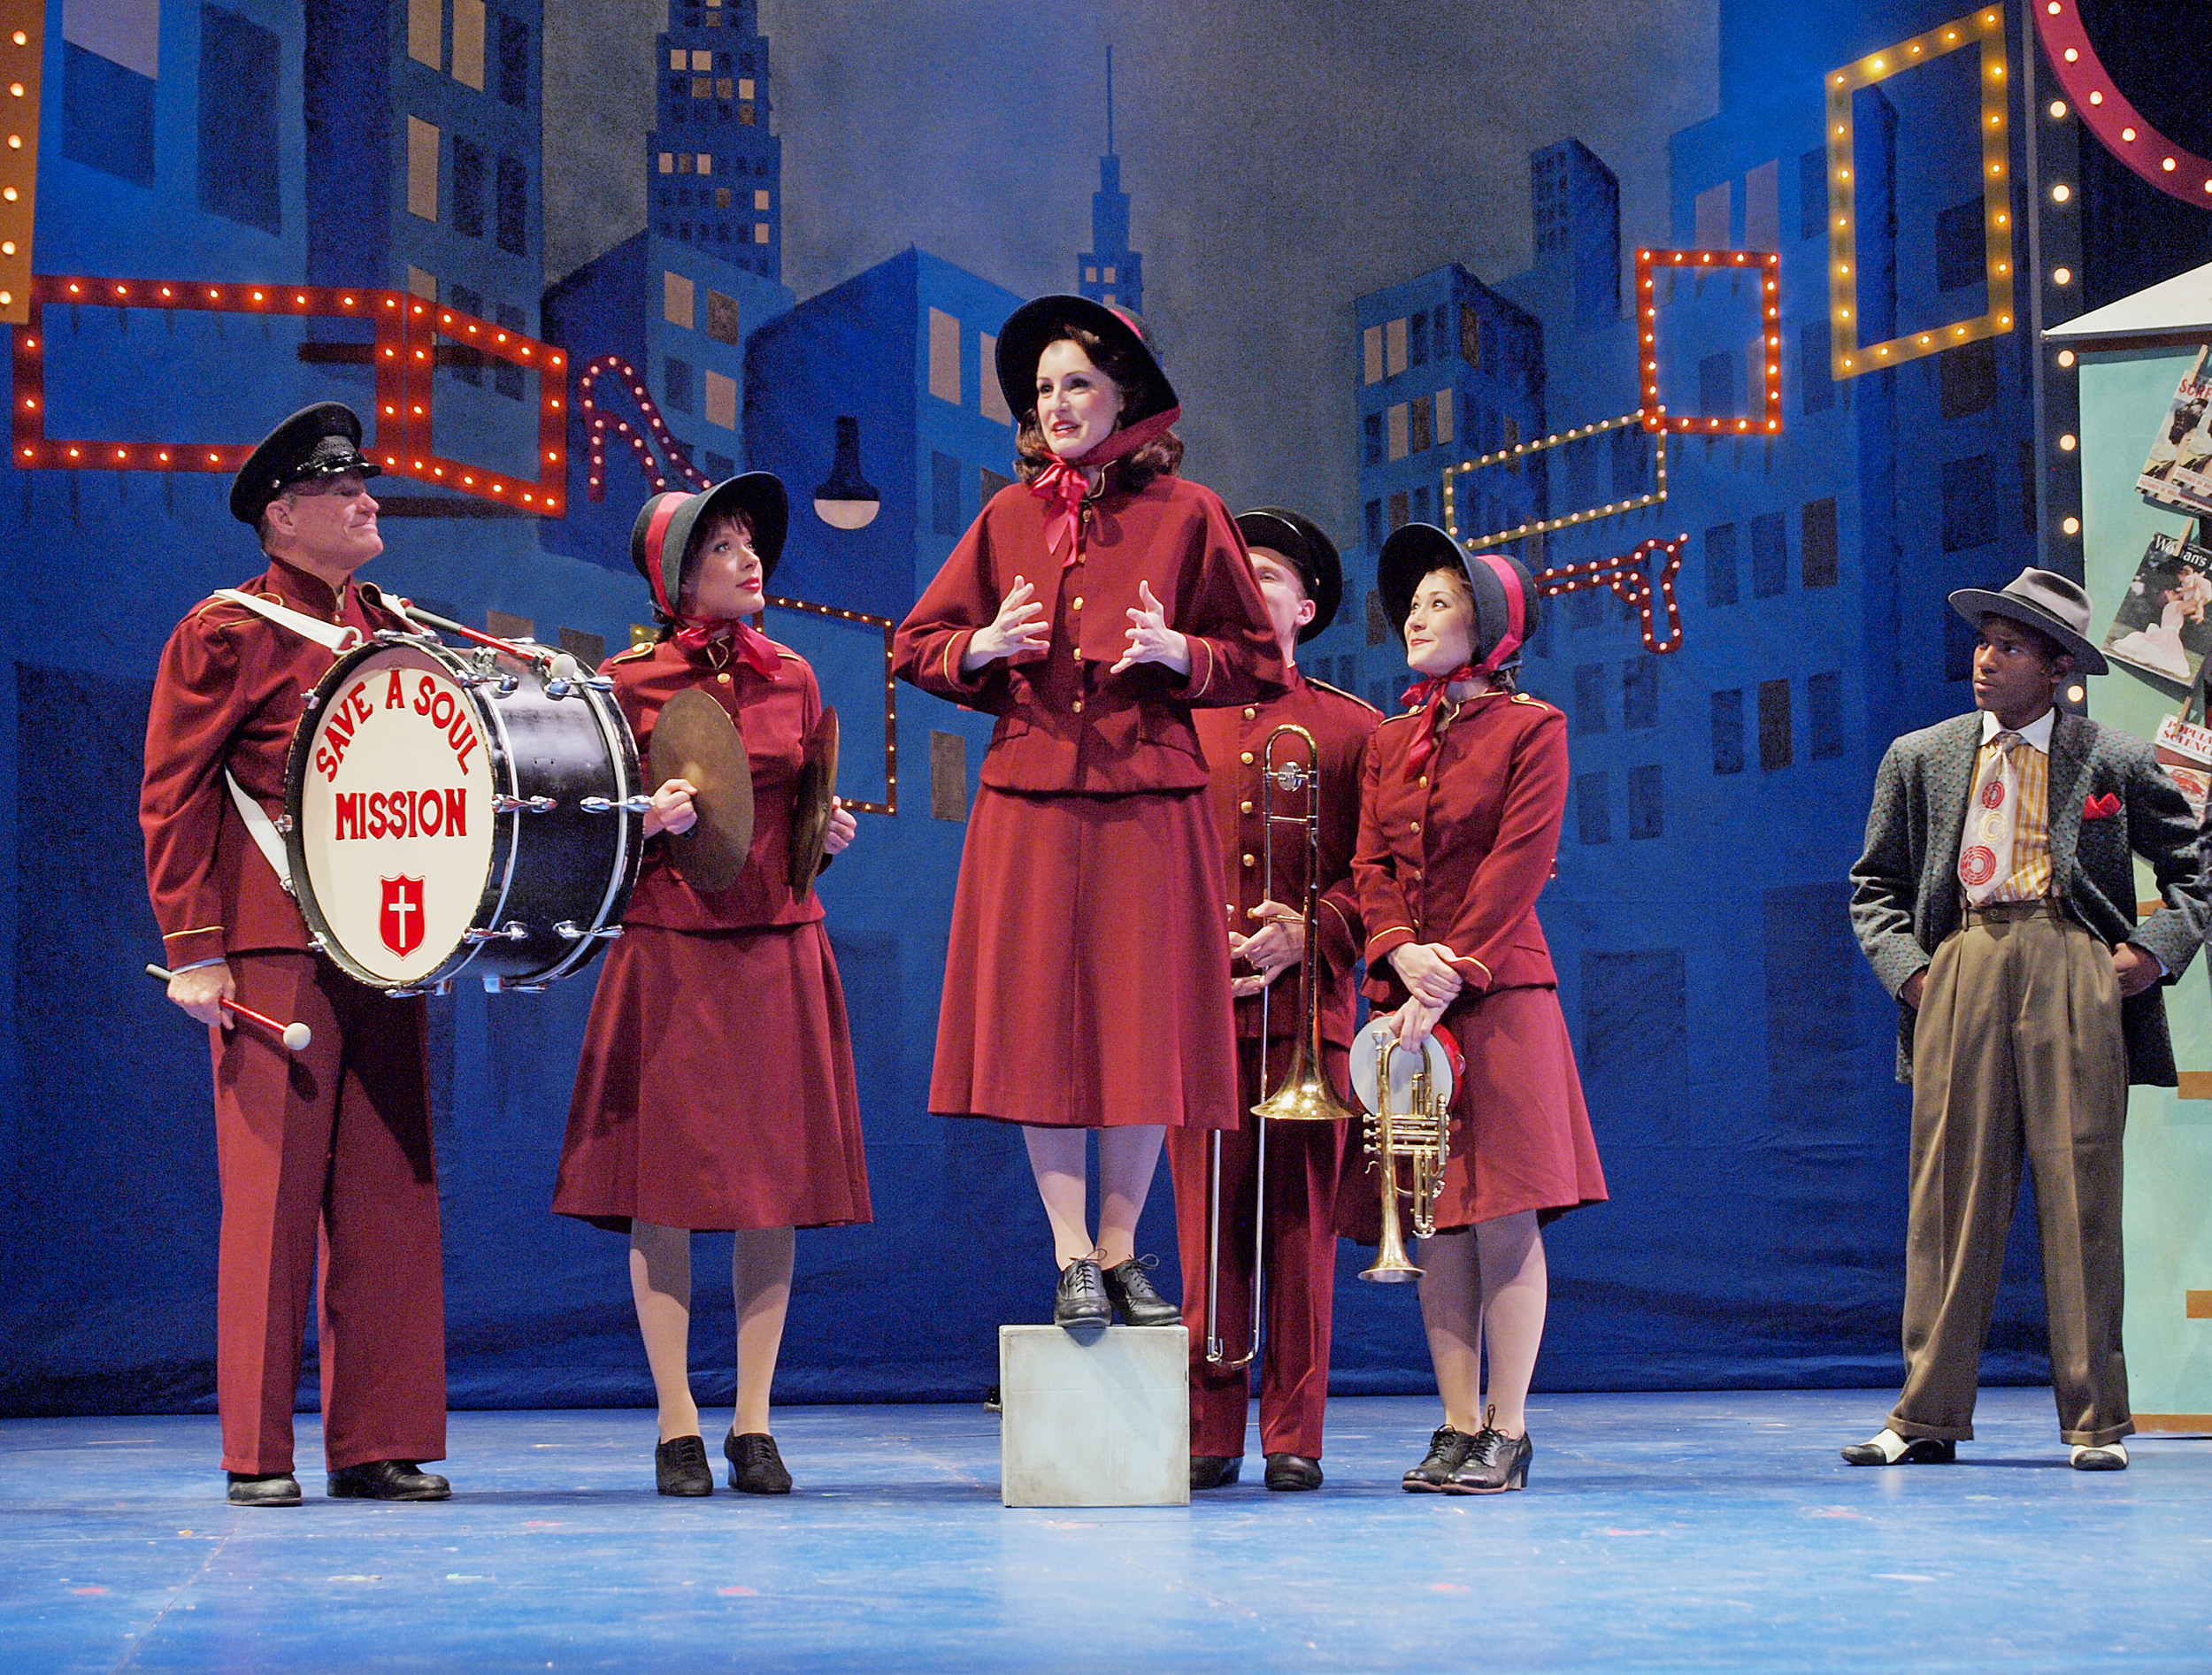 as-sarah-brown-in-guys--dolls_20570890863_o.jpg